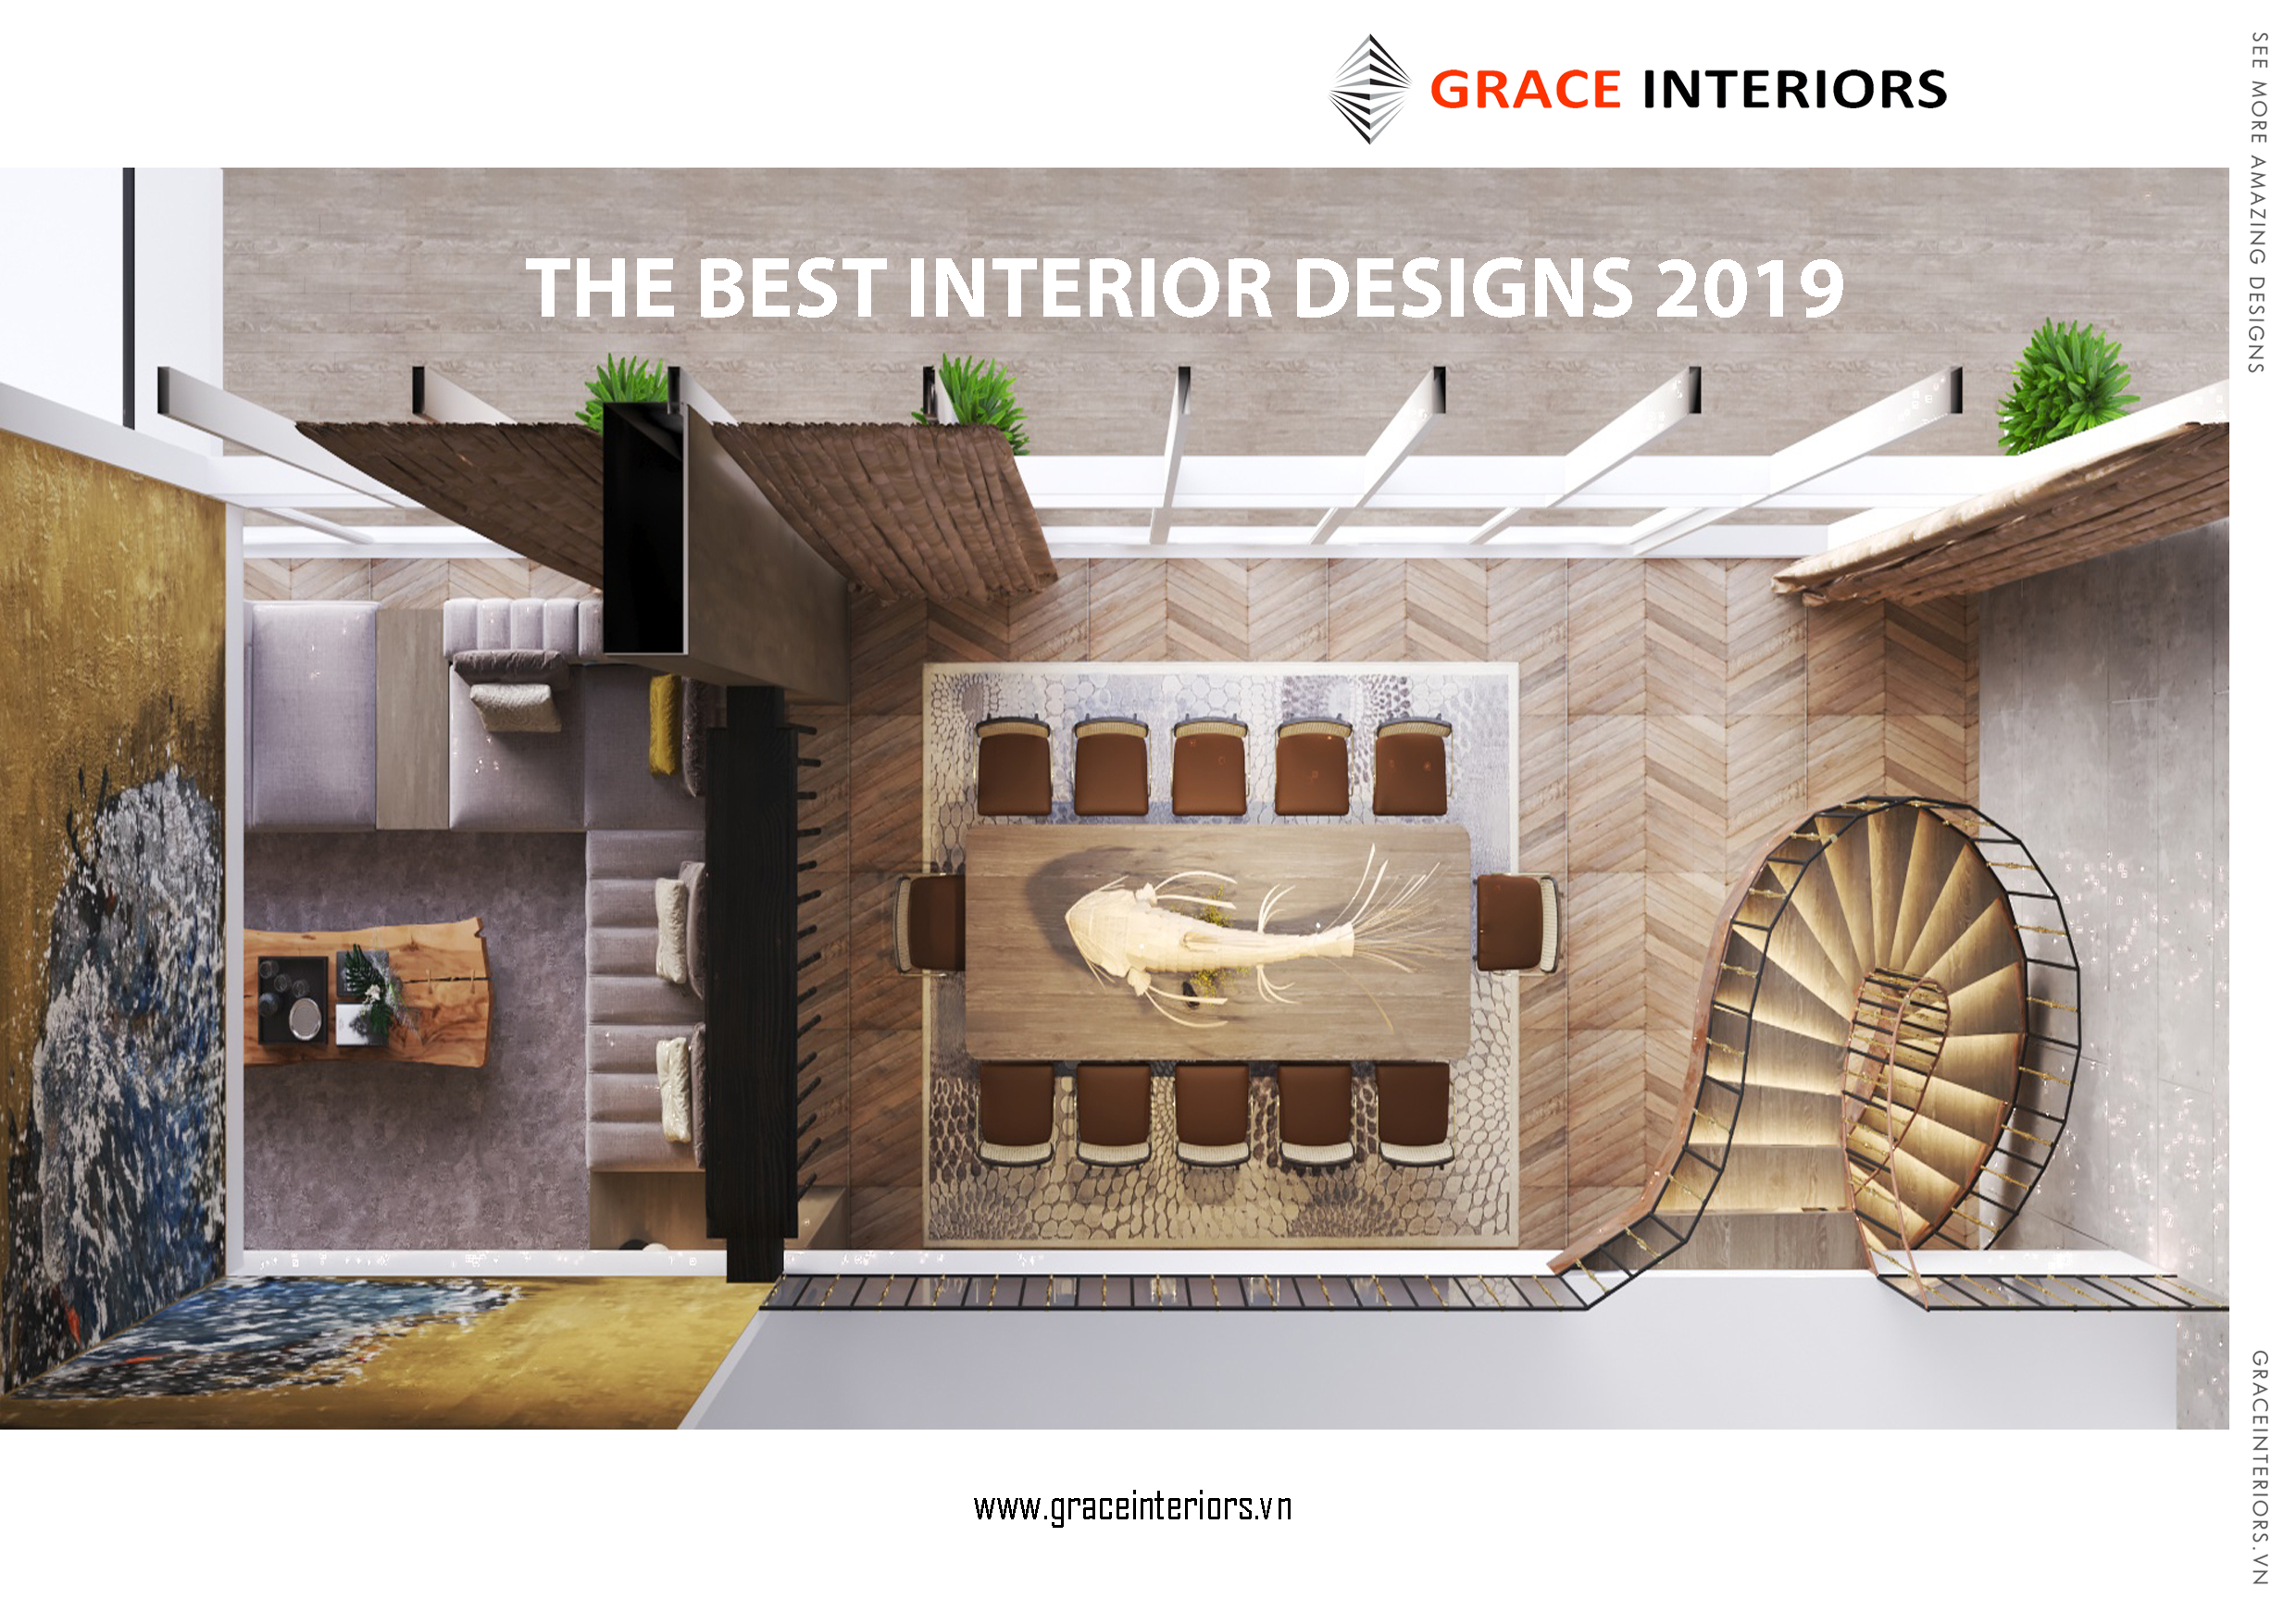 THE BEST INTERIOR DESIGN PROJECT OF OUR CLIENTS IN 2019 - We have collected some best interior design for our clients to make this collection. It should be helpful for brainstorming your idea.